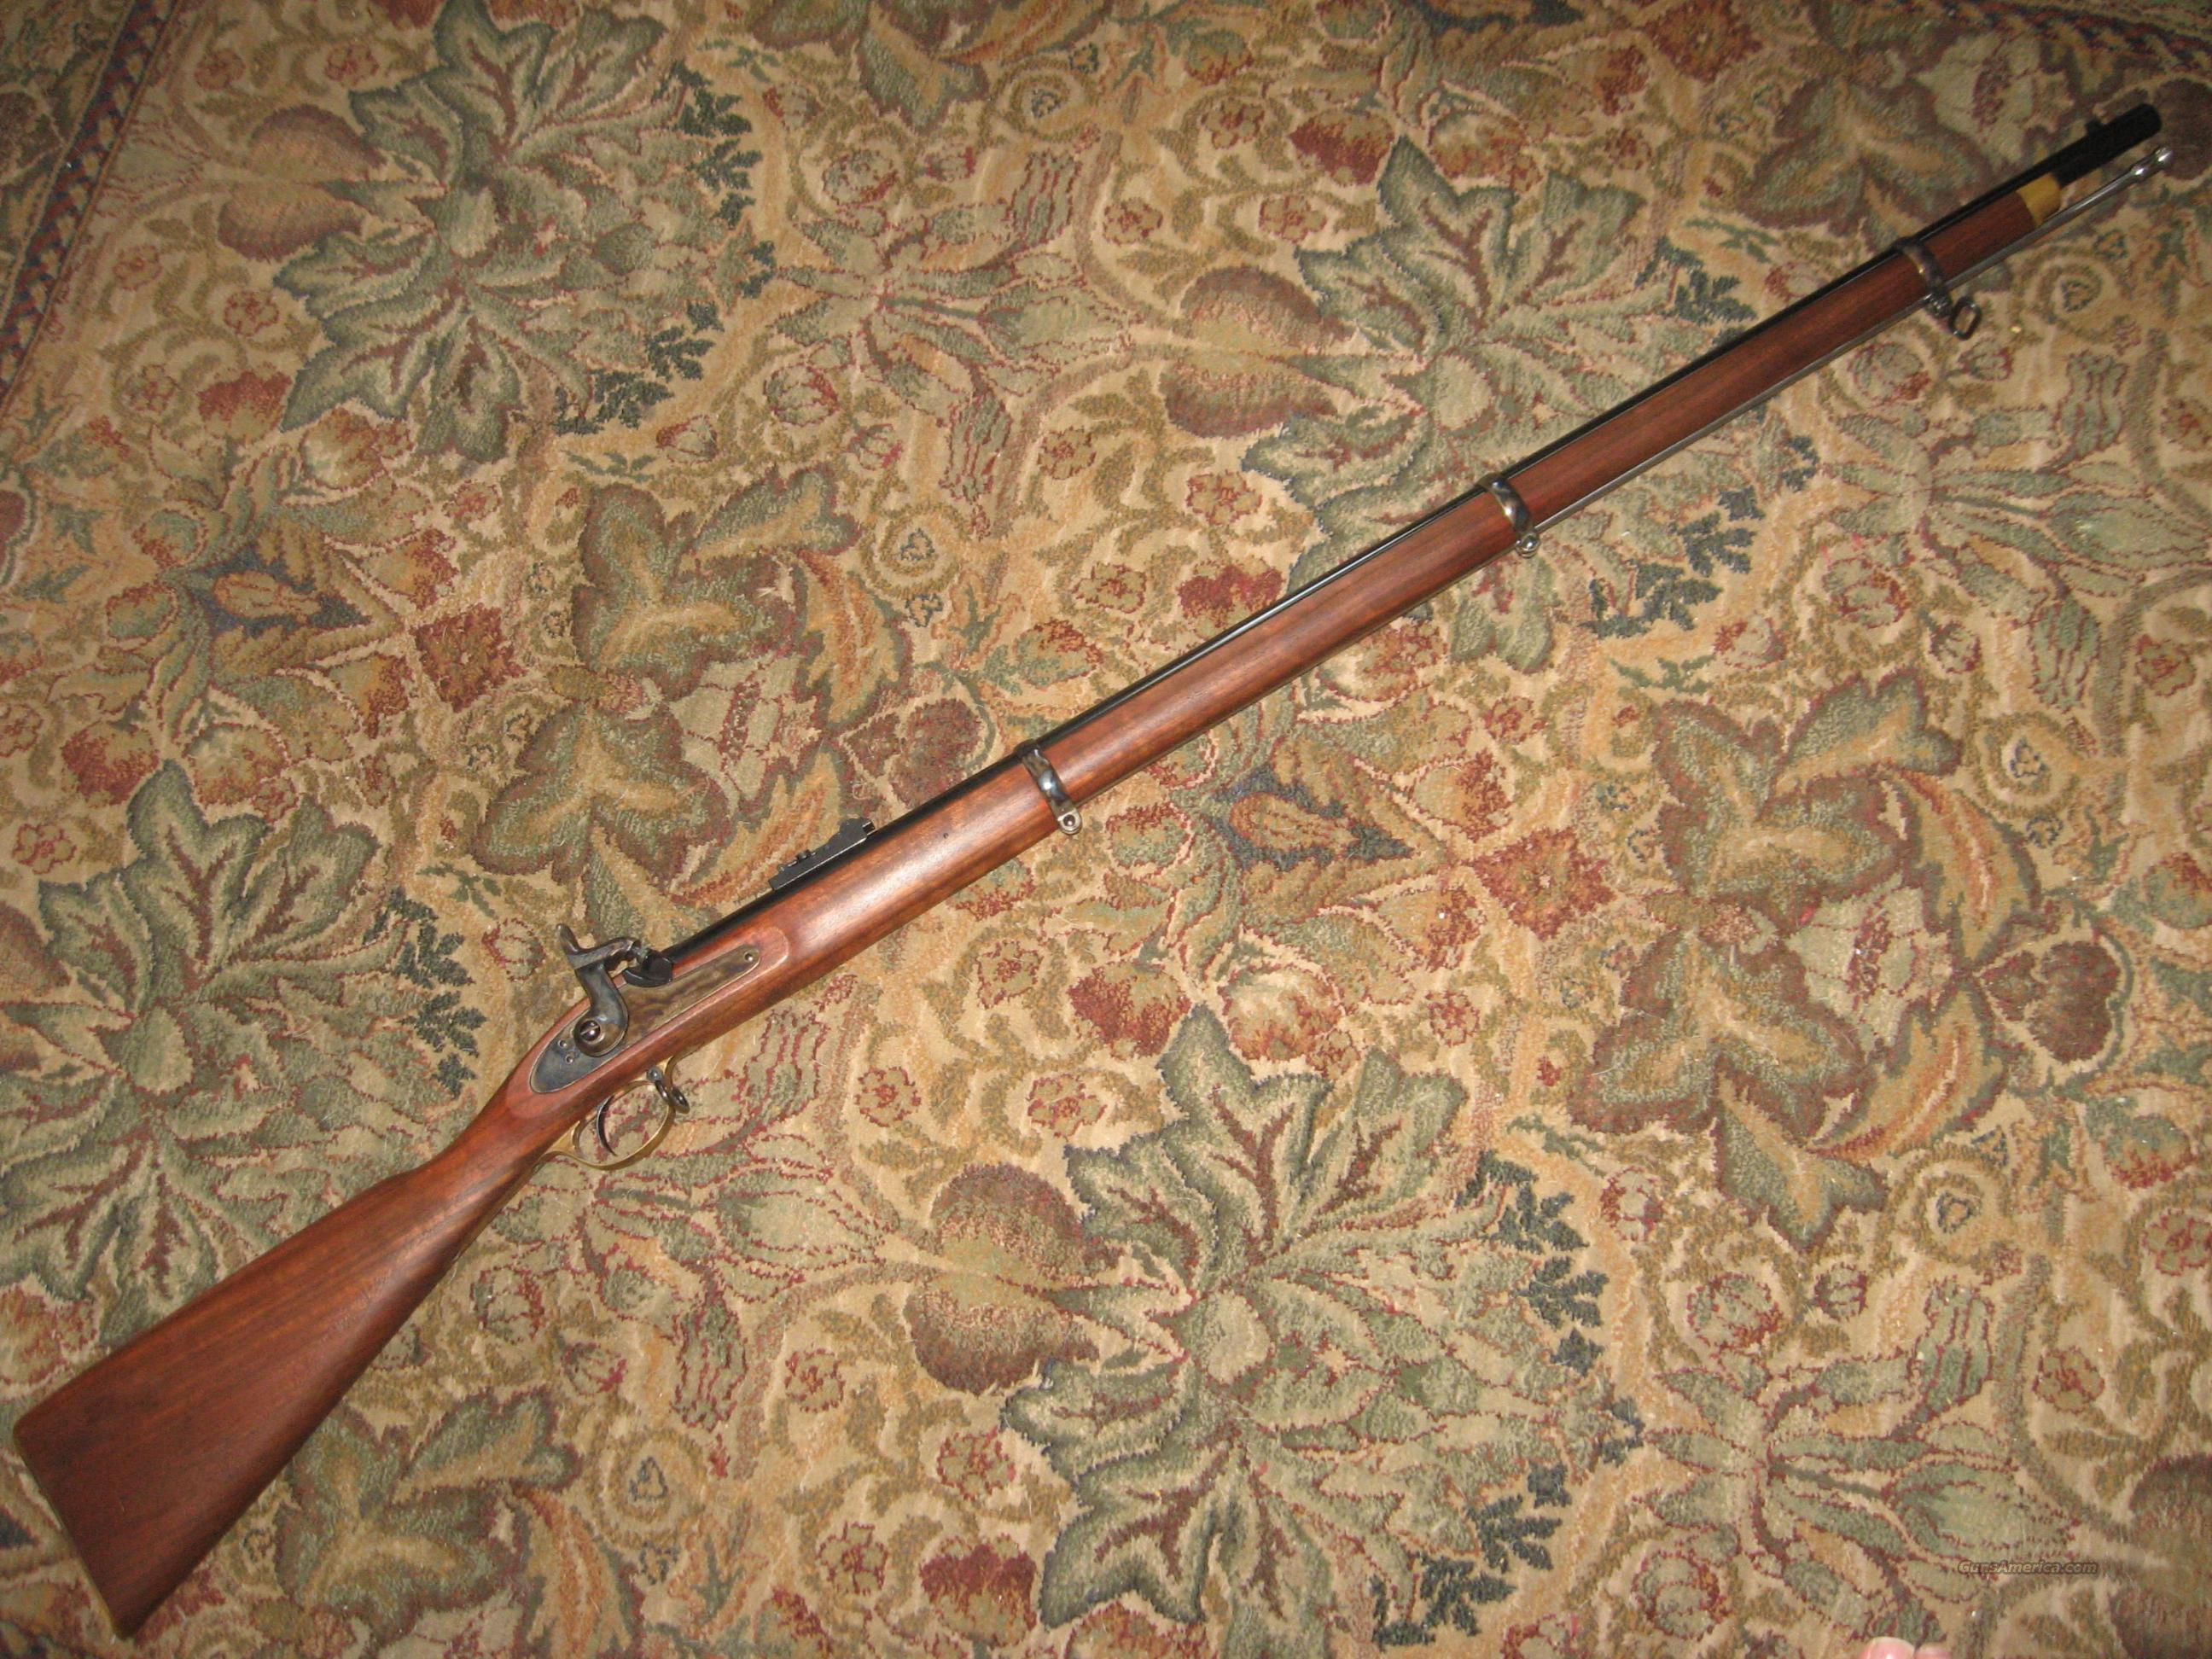 Enfield Pattern 1853 reproduction